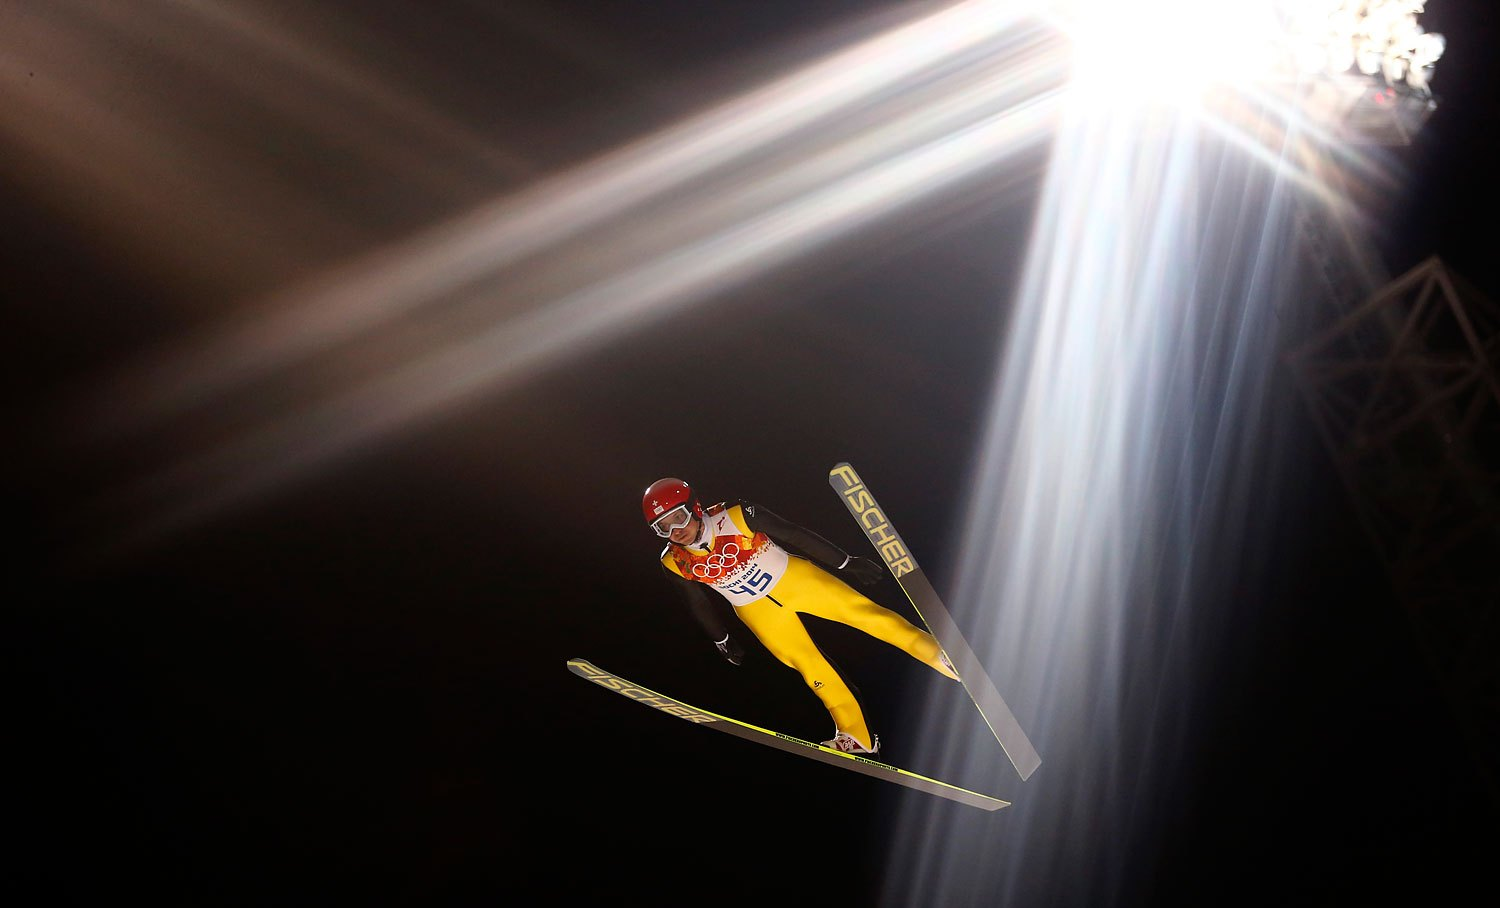 Switzerland's Simon Ammann soars through the air during the first round of the men's ski jumping large hill individual final.